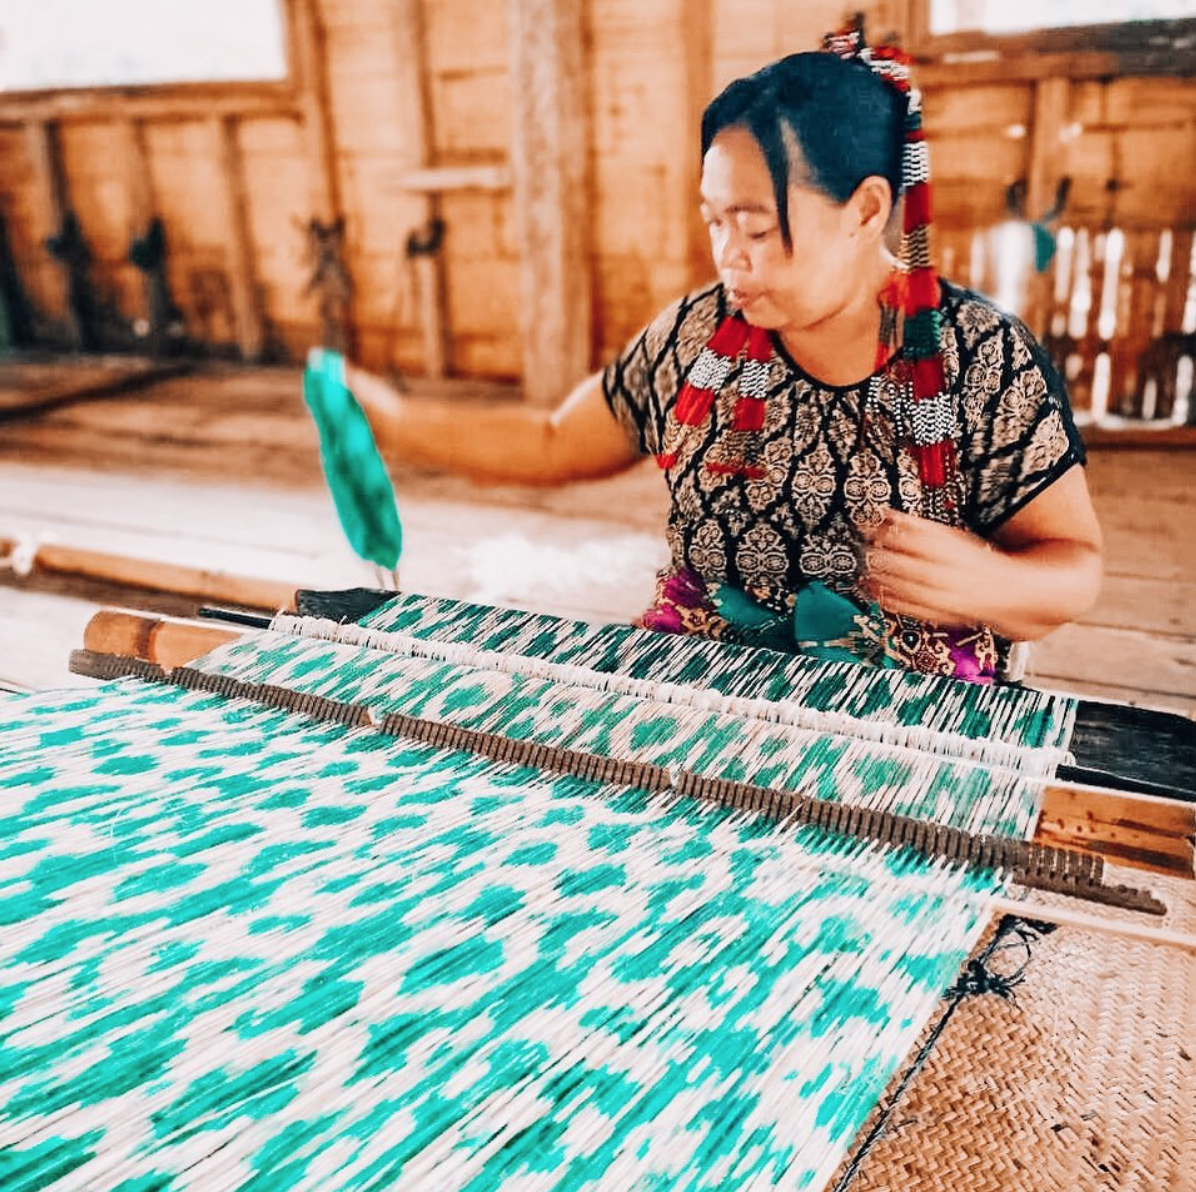 The T'boli weavers create gorgeous material that Clare features in her designs. (Image: Clare Hynes)